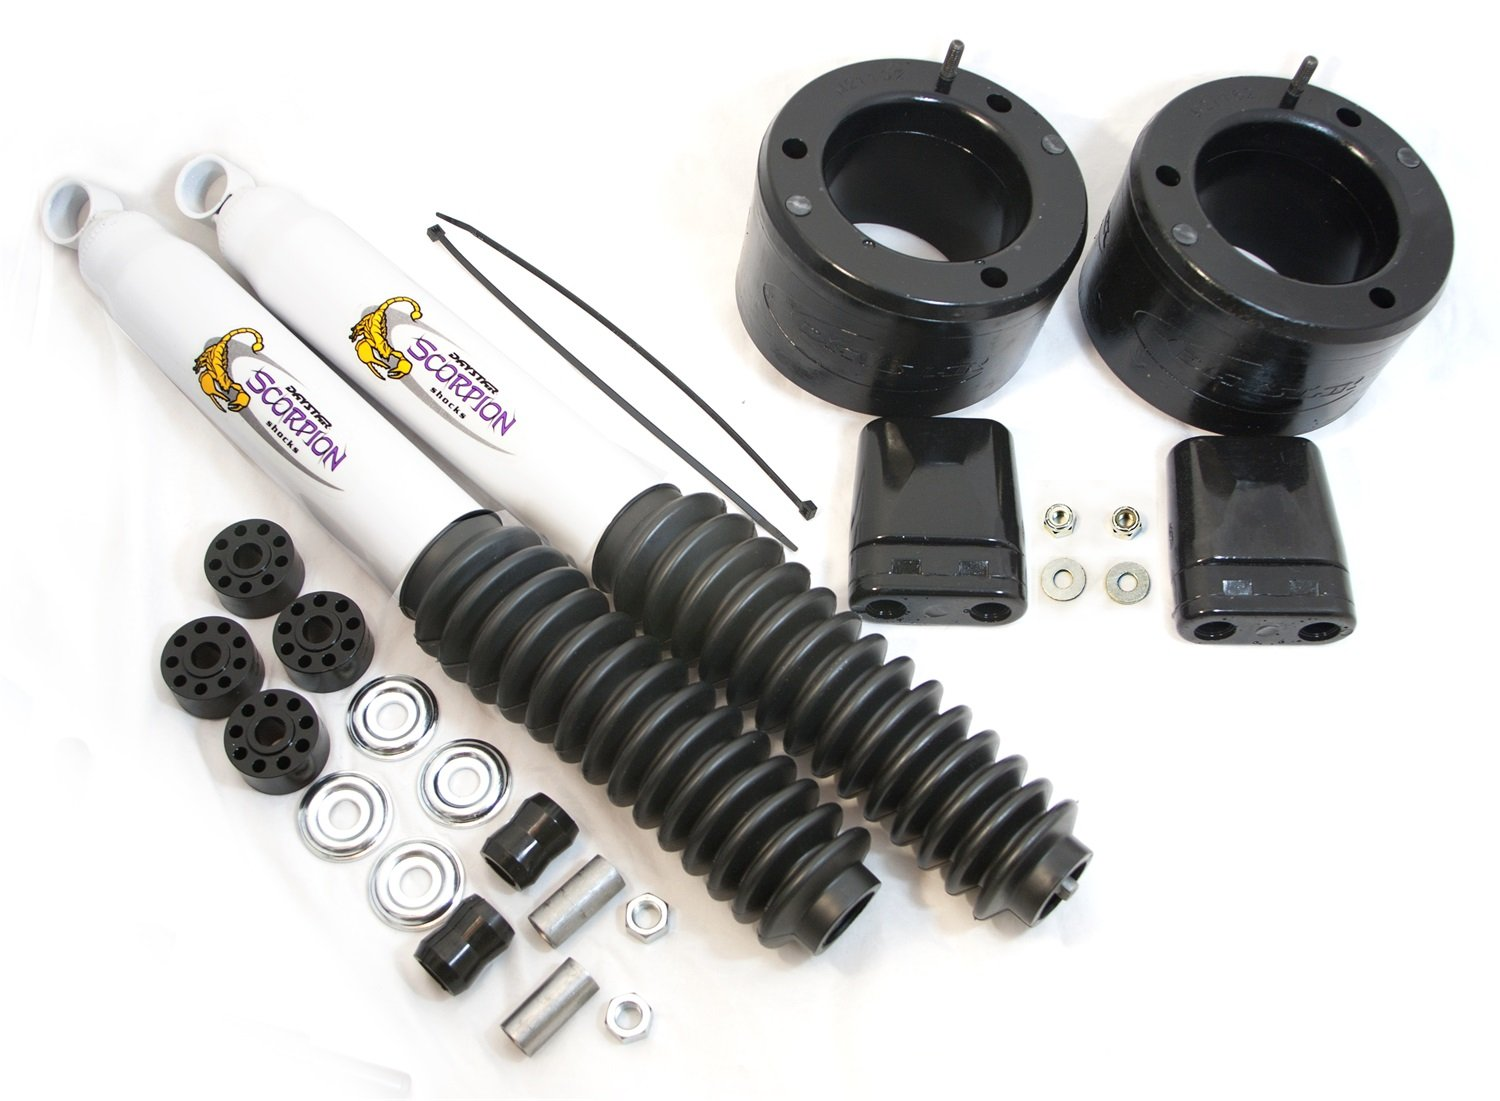 Daystar, Dodge RAM 2500/3500 2'' Leveling Kit with bump stops and front shocks, fits production date of May 2013 to 2017 4WD, all transmissions, all cabs, Does not fit Power Wagon KC09138BK, Made in America